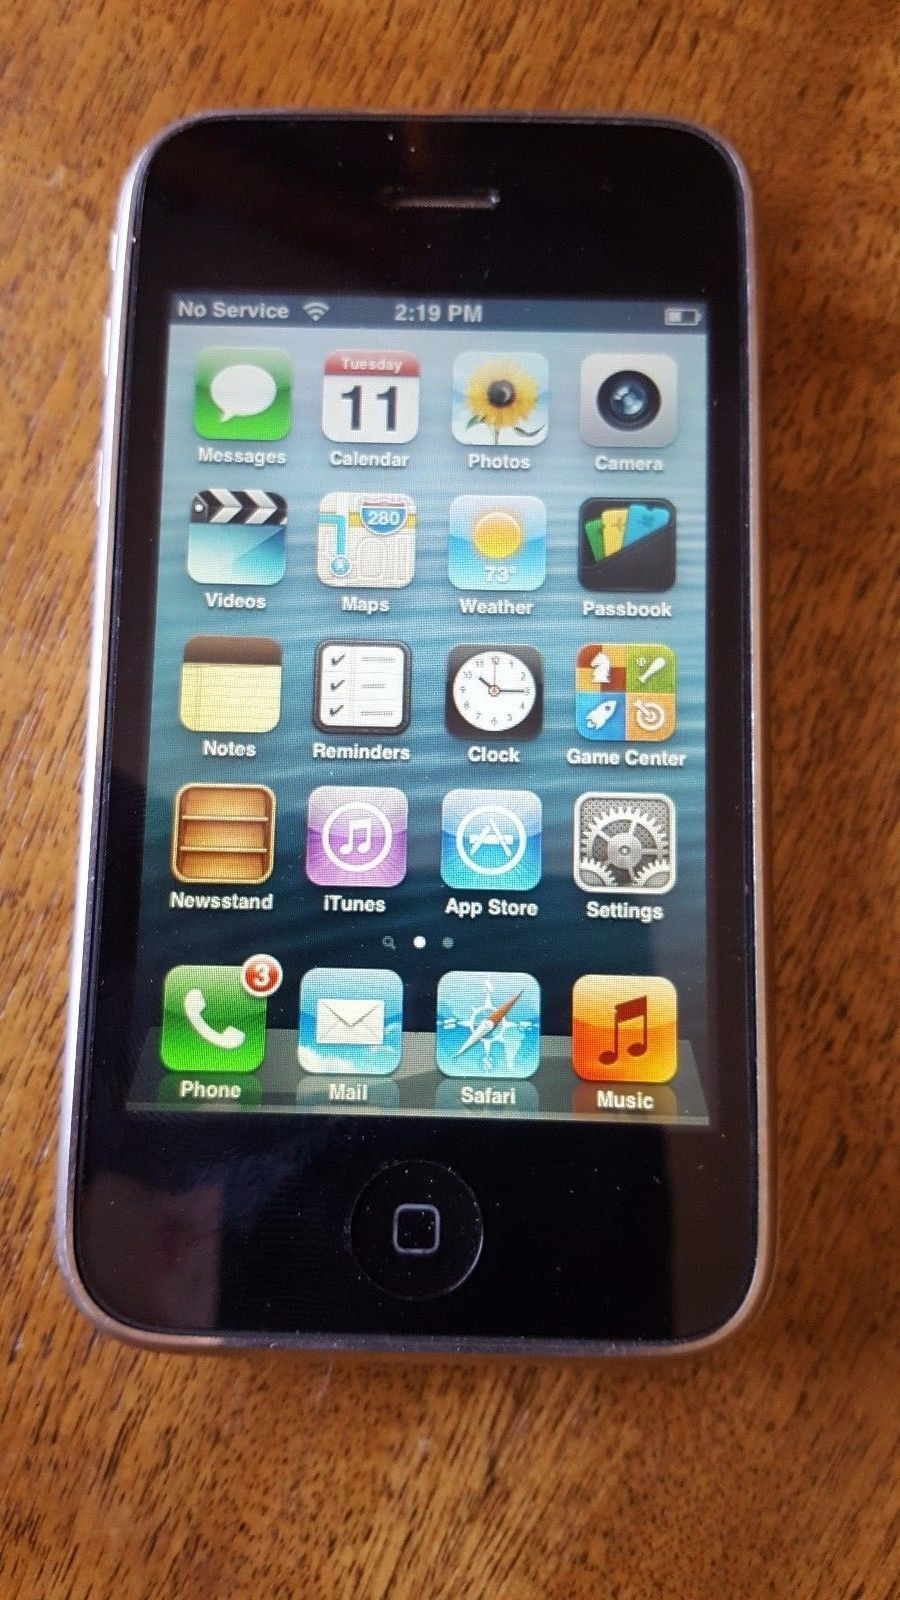 Apple iPhone 3GS 32GB UnlockedWhite AT&T CLEAN ESN/IMEI ModelNo.A1303-NO RESERVE https://t.co/01LEsxPLLG https://t.co/RHrIFvjDp6